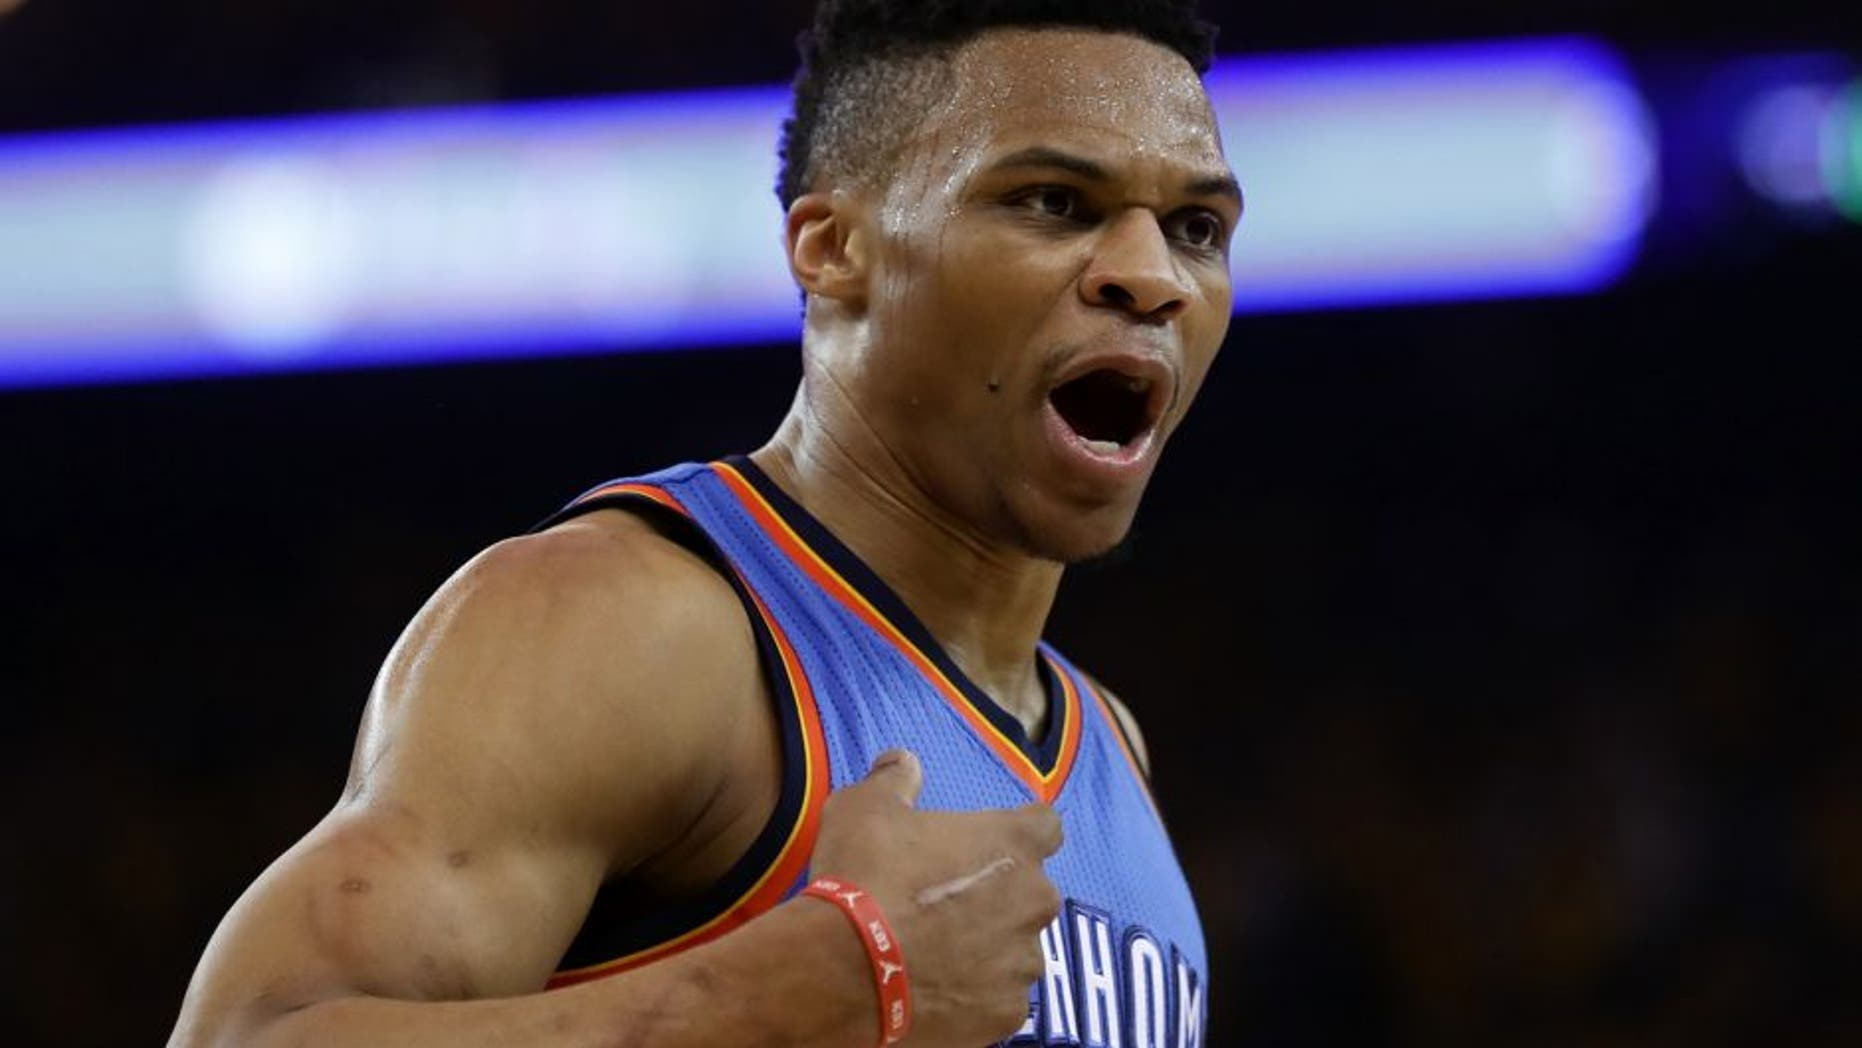 OAKLAND, CA - MAY 26: Russell Westbrook #0 of the Oklahoma City Thunder reacts to a play against the Golden State Warriors during Game Five of the Western Conference Finals during the 2016 NBA Playoffs at ORACLE Arena on May 26, 2016 in Oakland, California. (Photo by Ezra Shaw/Getty Images)